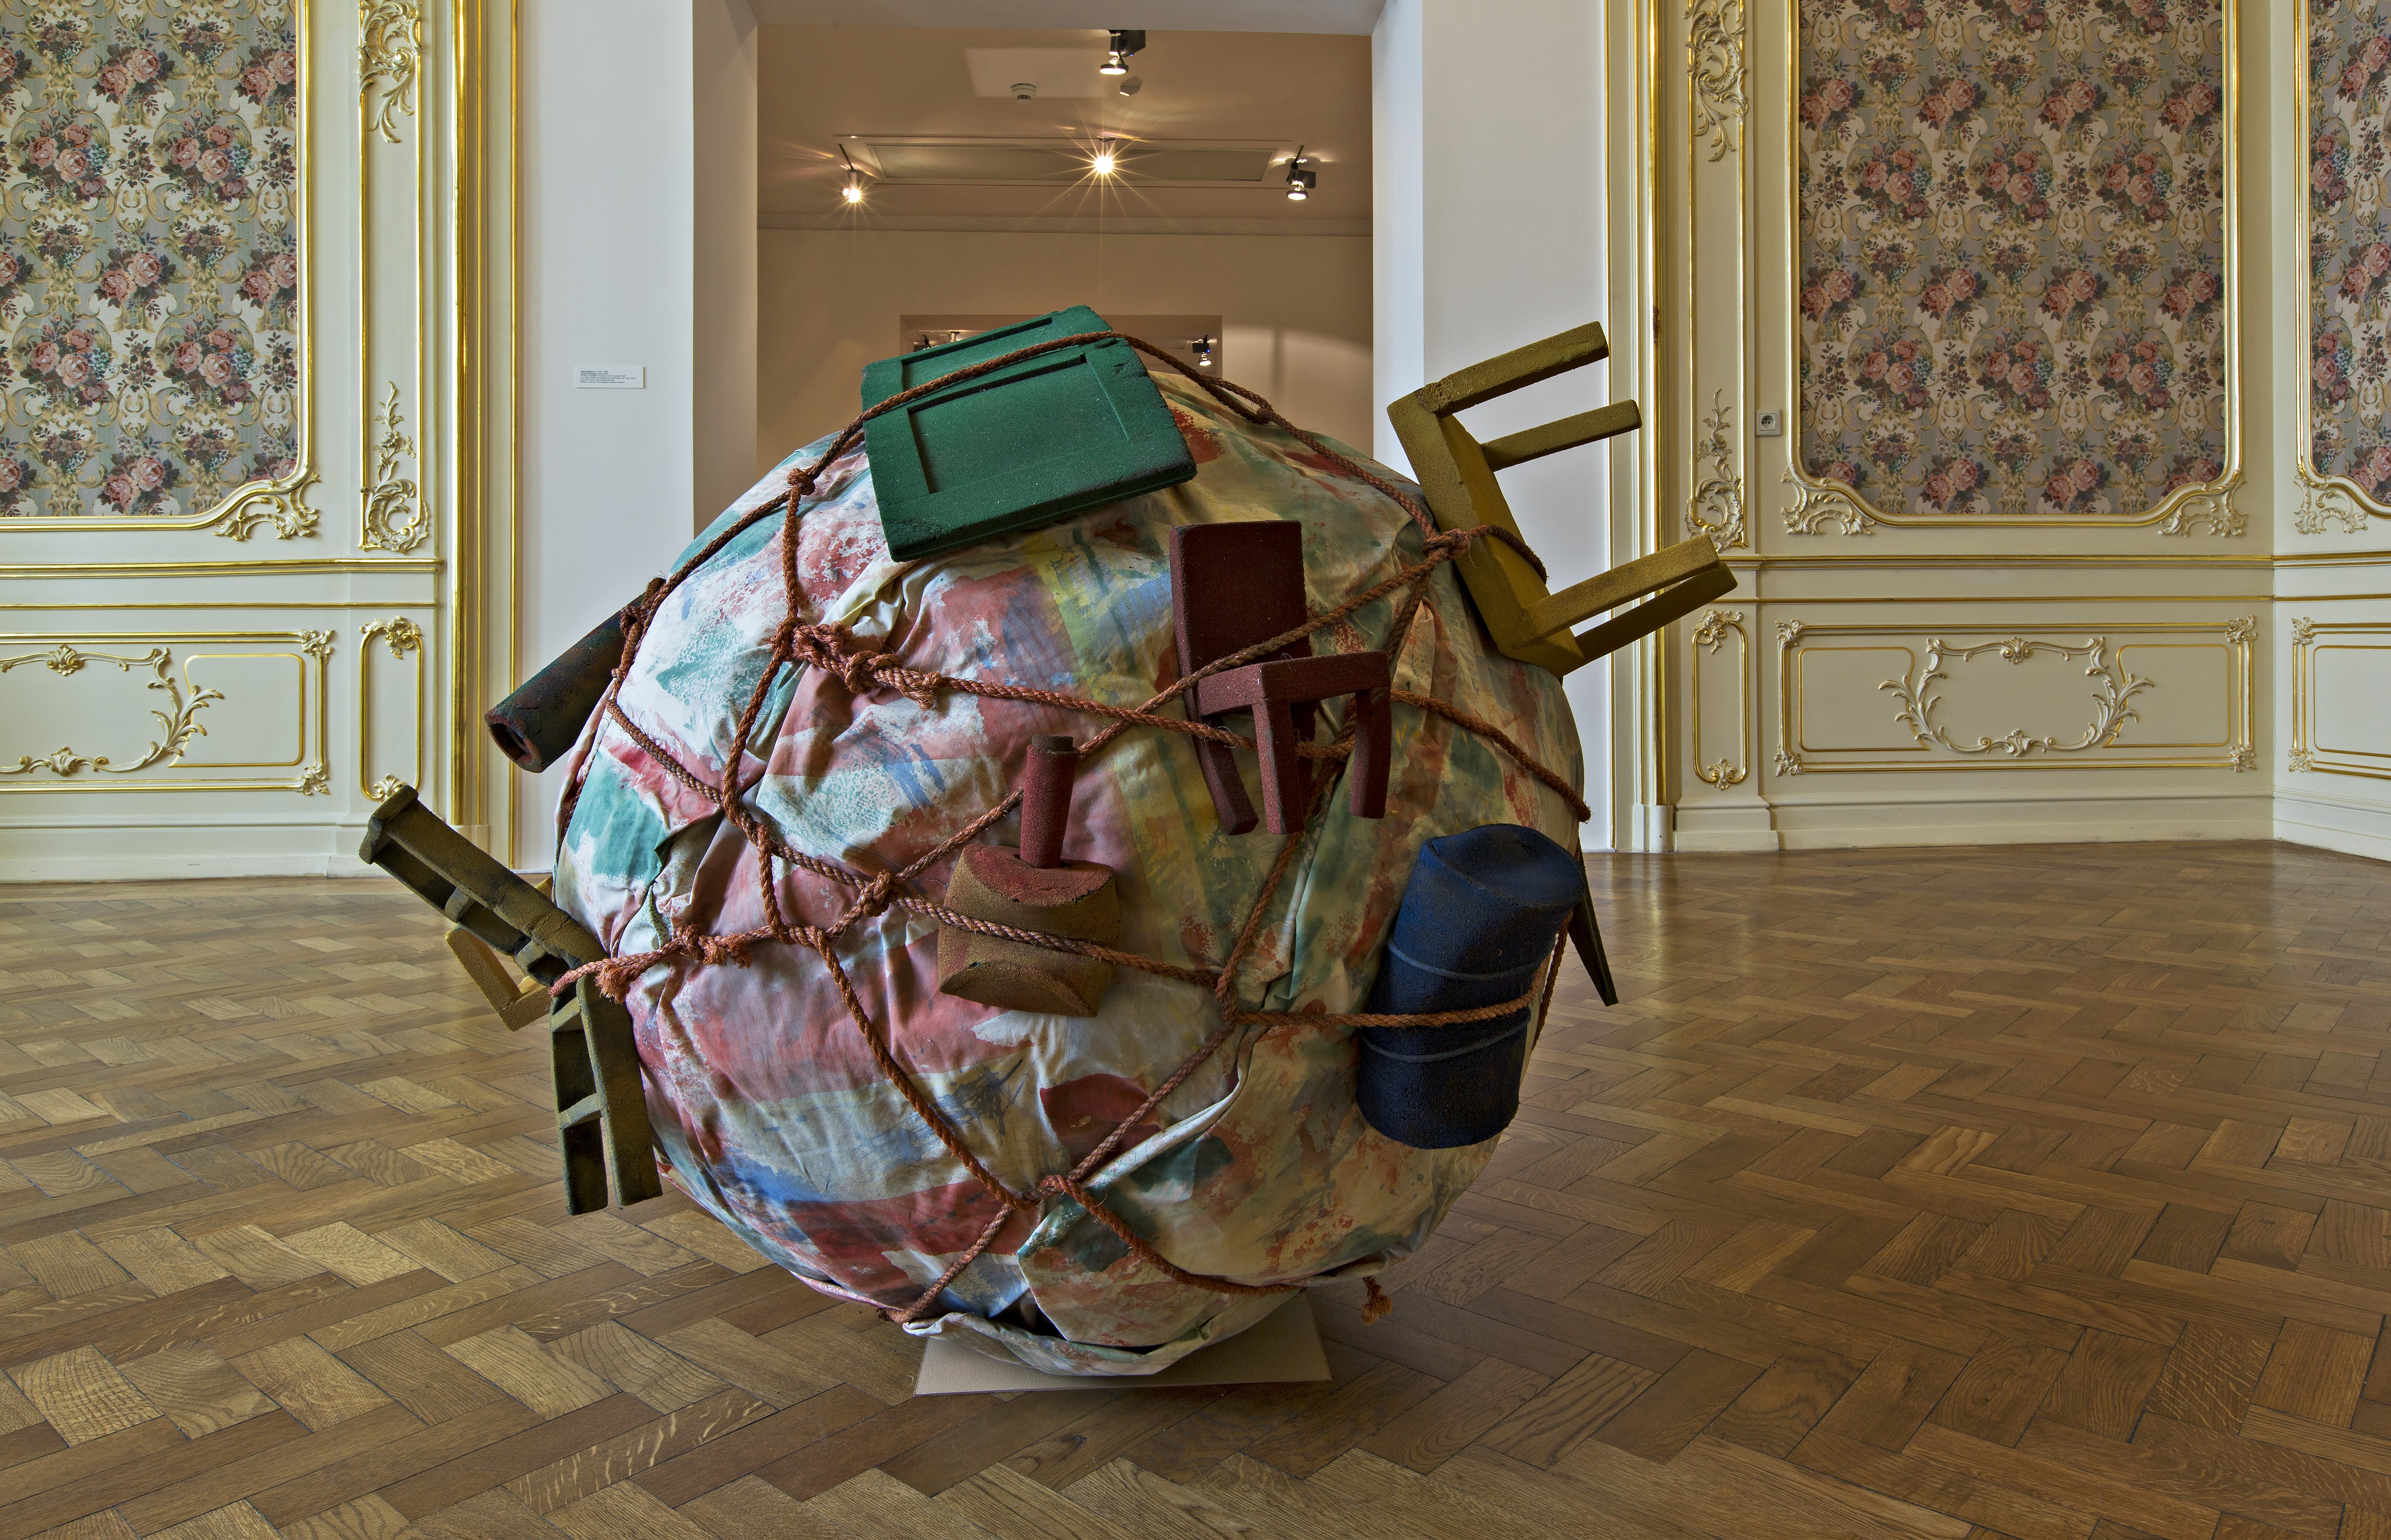 Claes Oldenburg, Coosje van Bruggen, prototyp Houseball, 1985